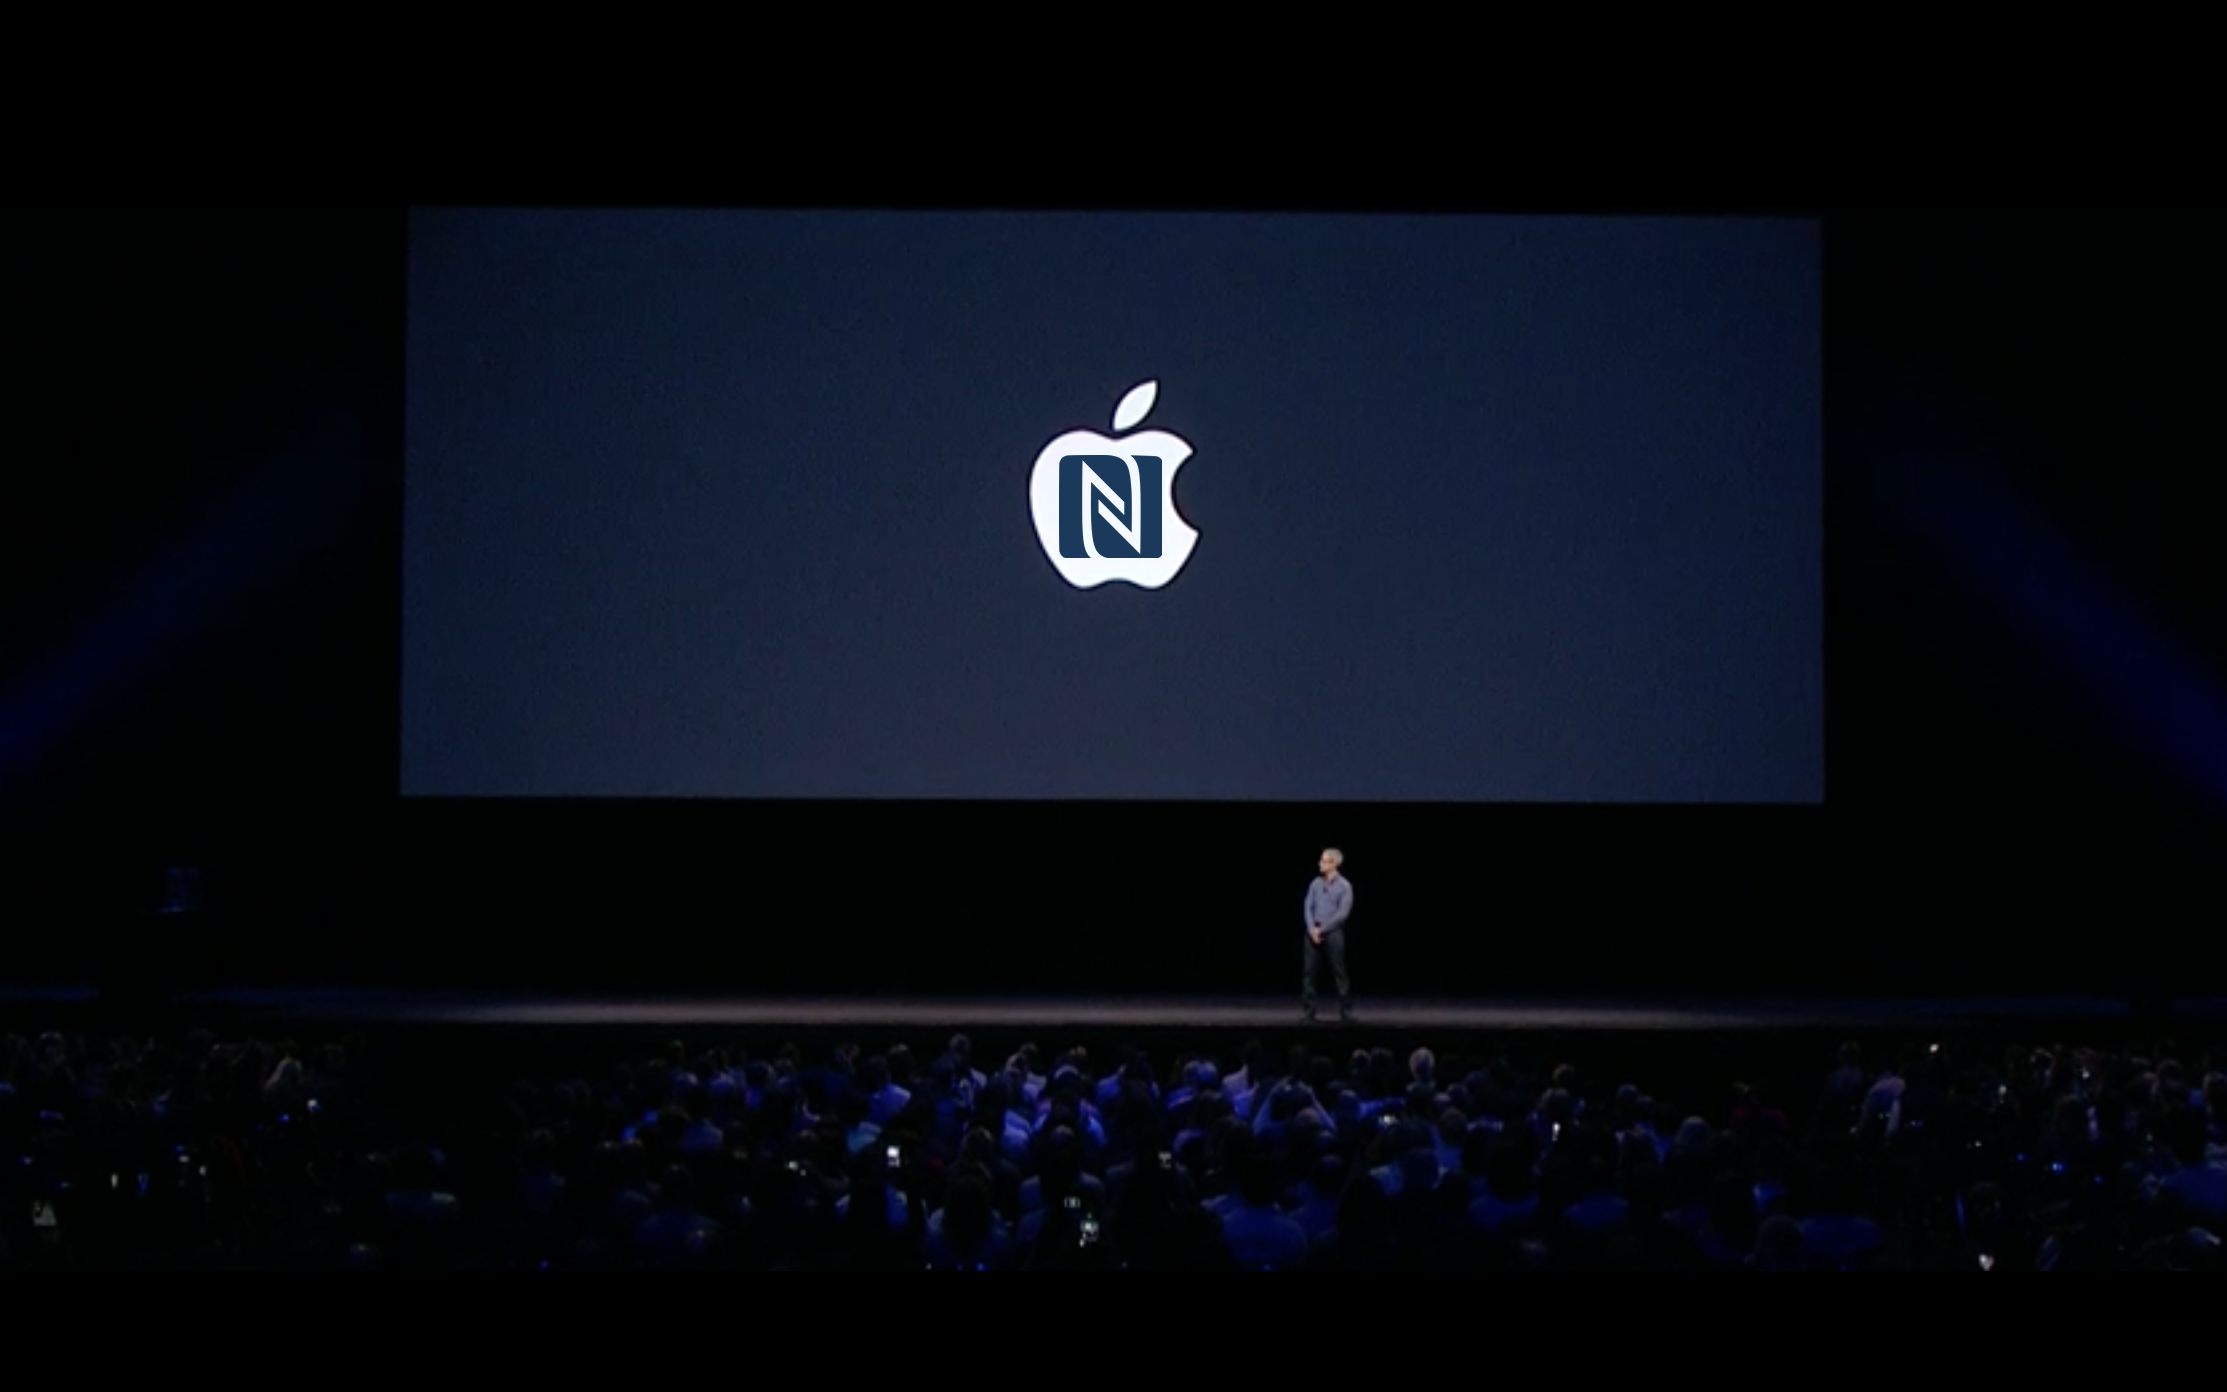 Aconteceu! Apple Rende-se ao NFC